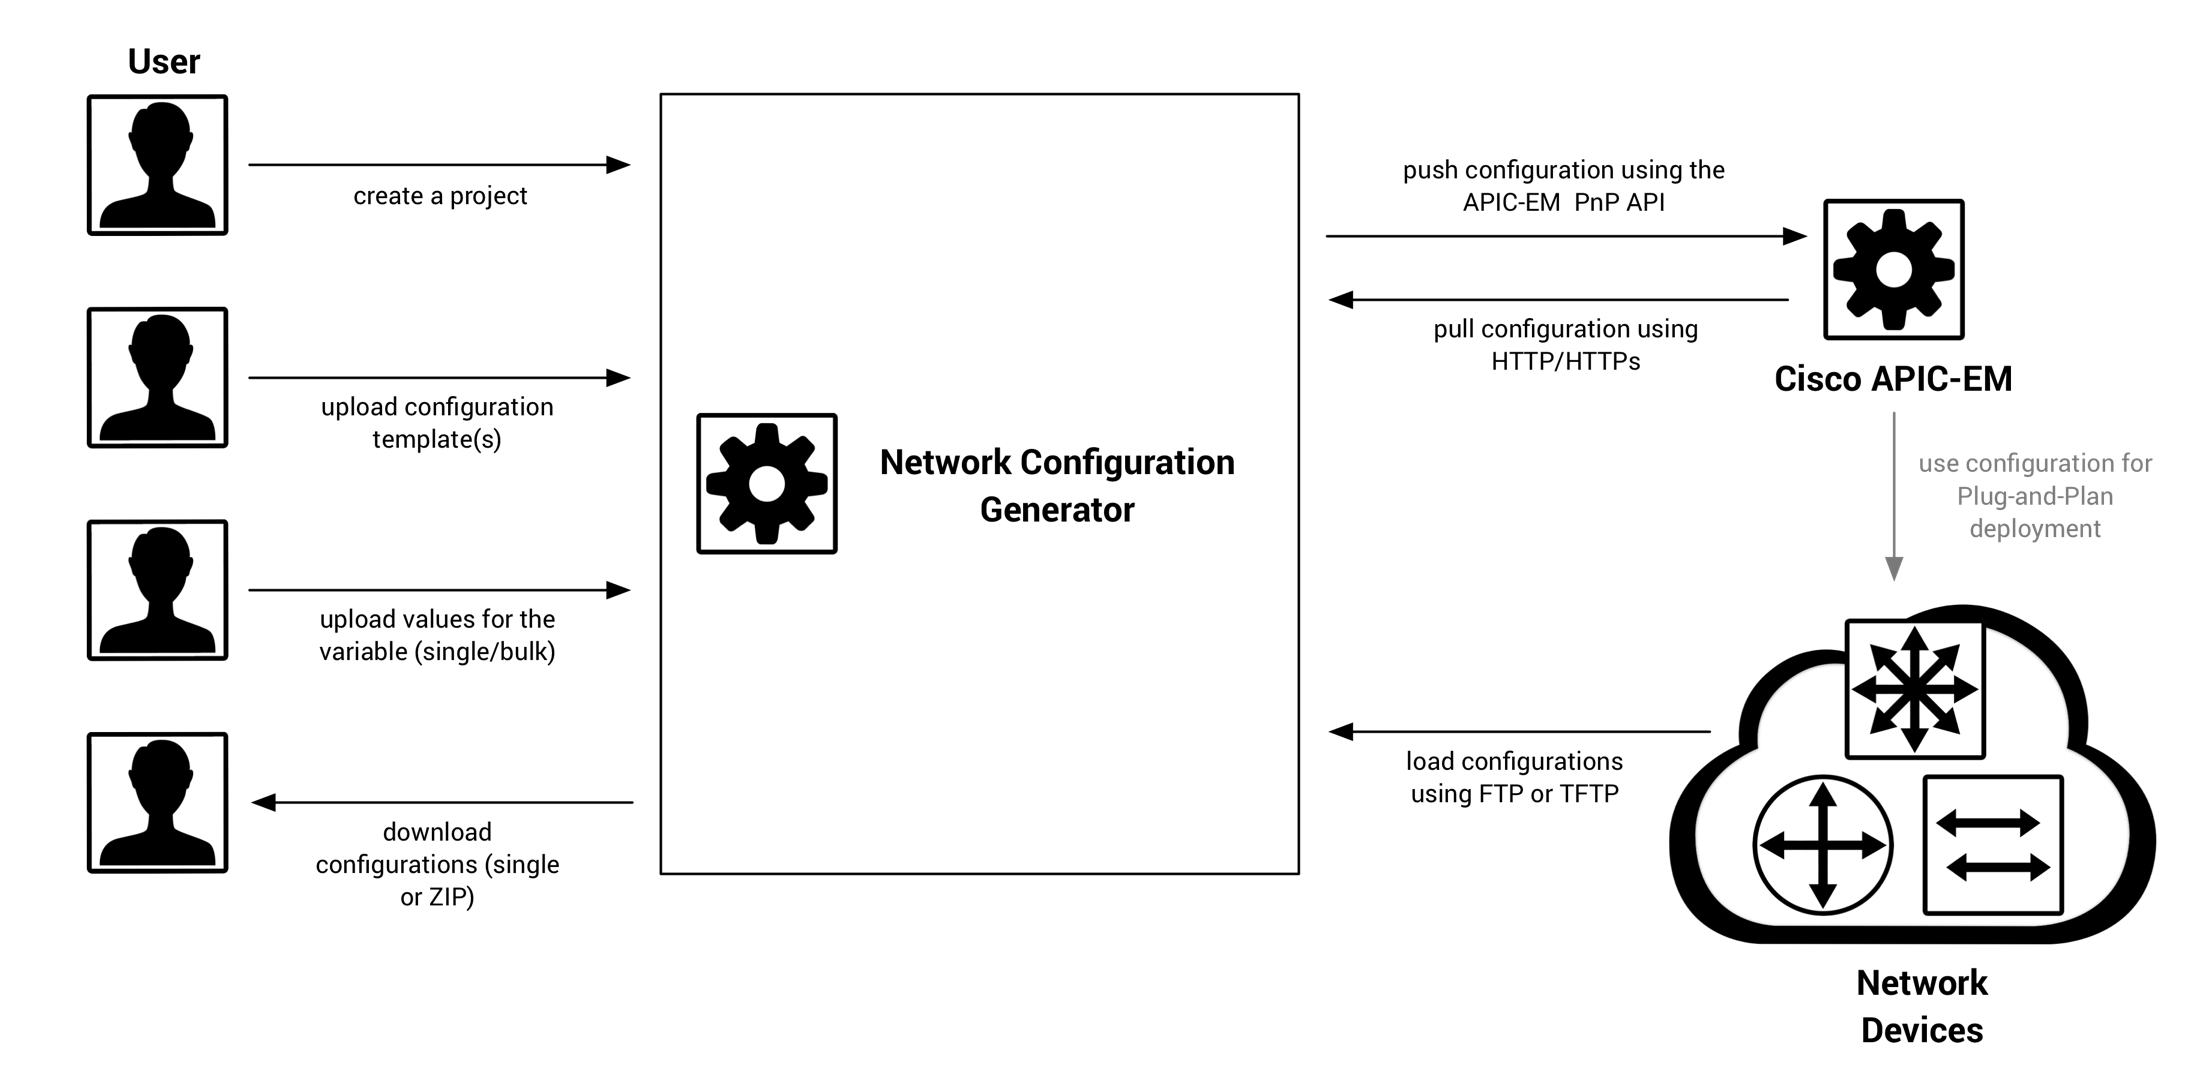 the use case for the network configuration generator